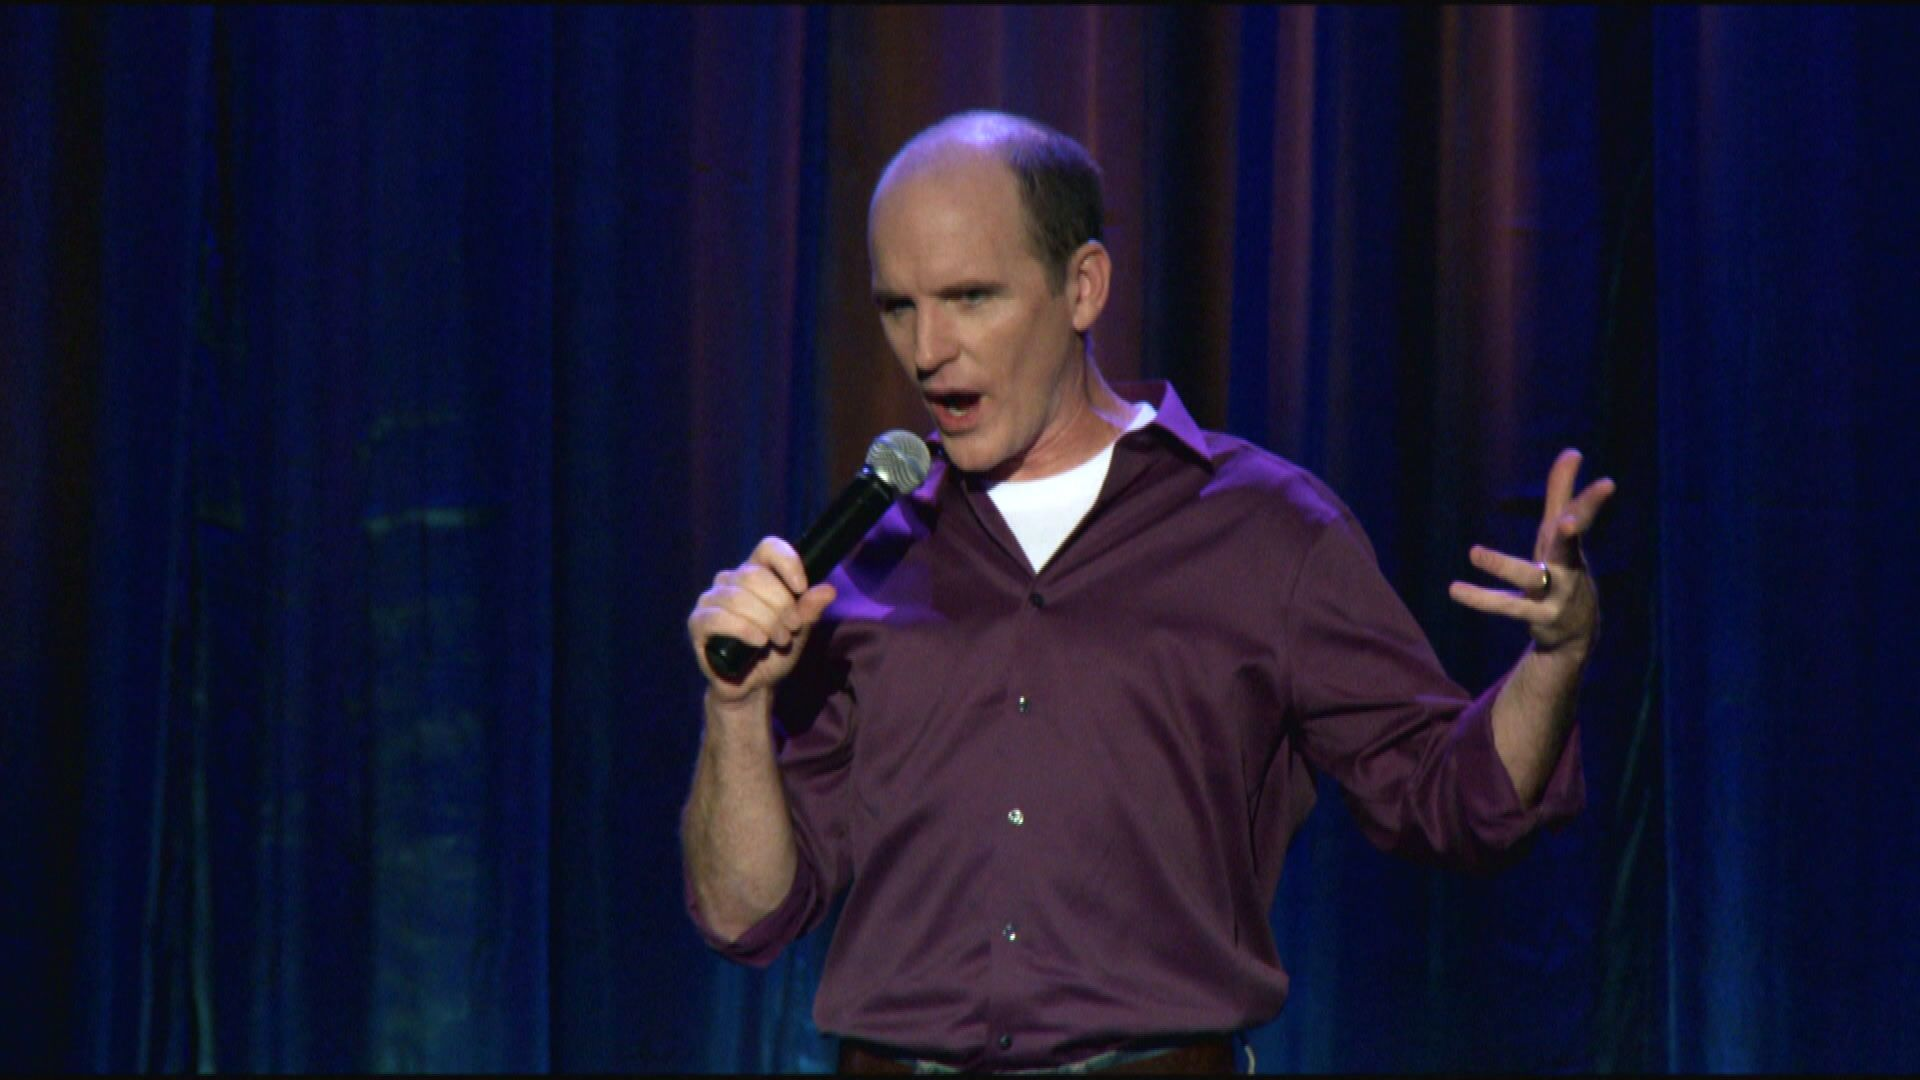 Daniel Tosh Hair Loss Is Funny Man Comedy Central Comedian Daniel Tosh ...